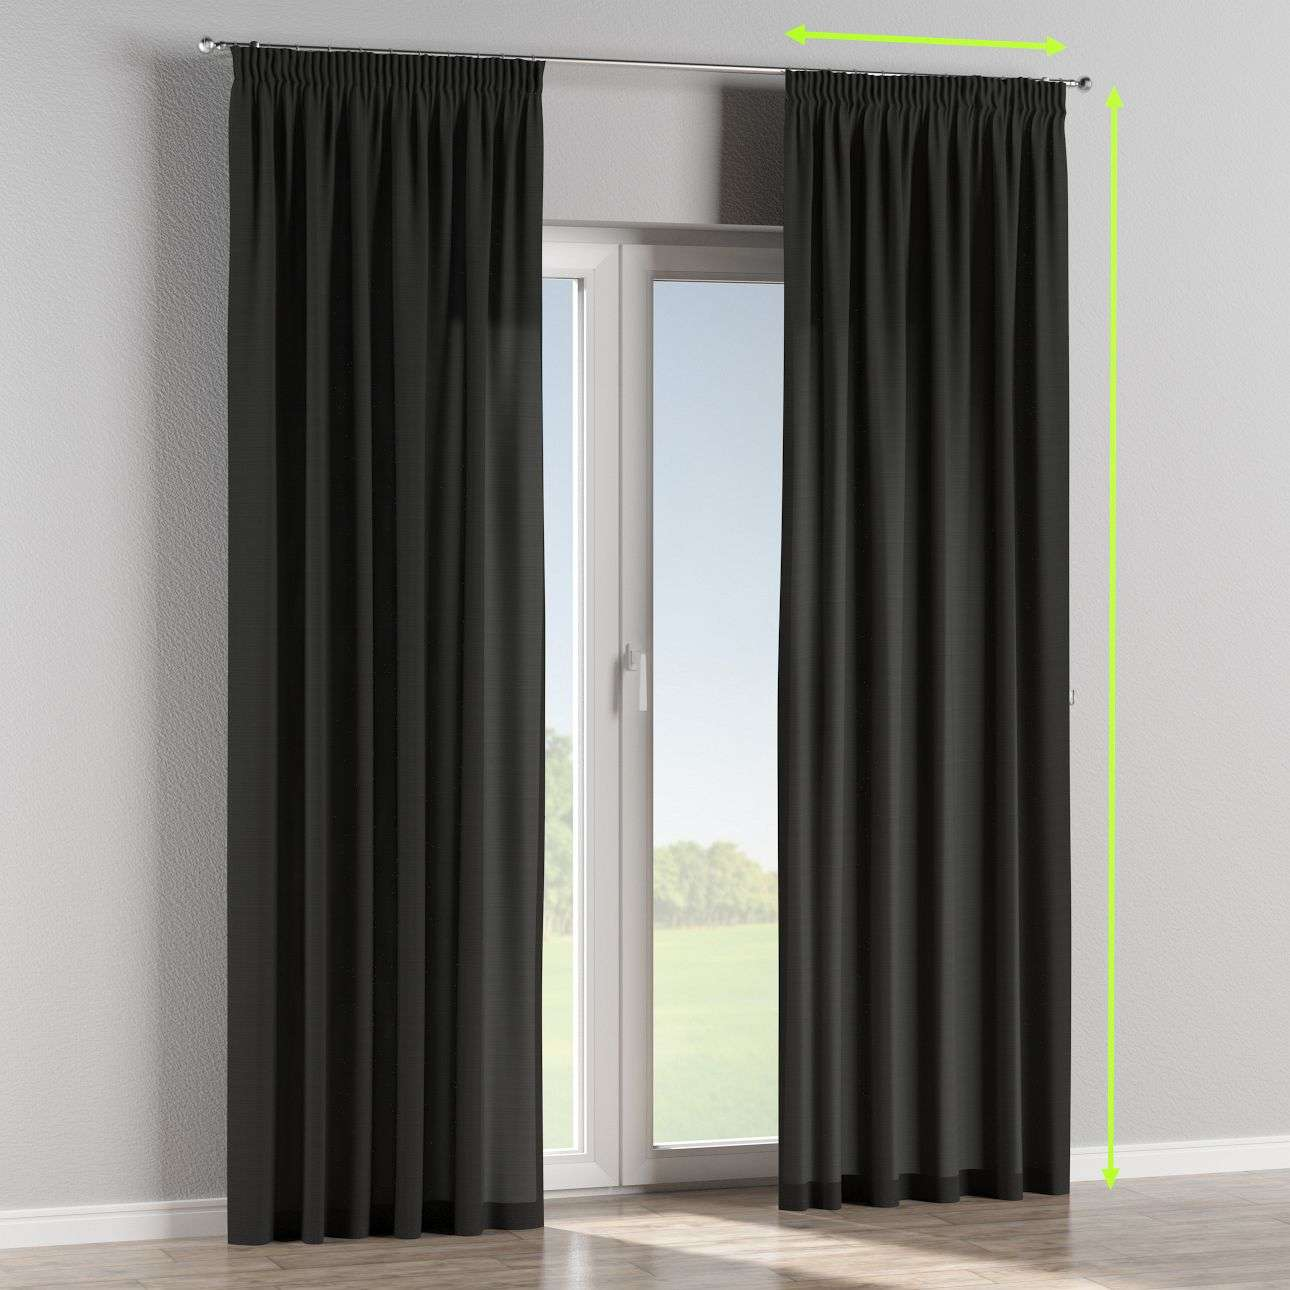 Pencil pleat lined curtains in collection Jupiter, fabric: 127-99